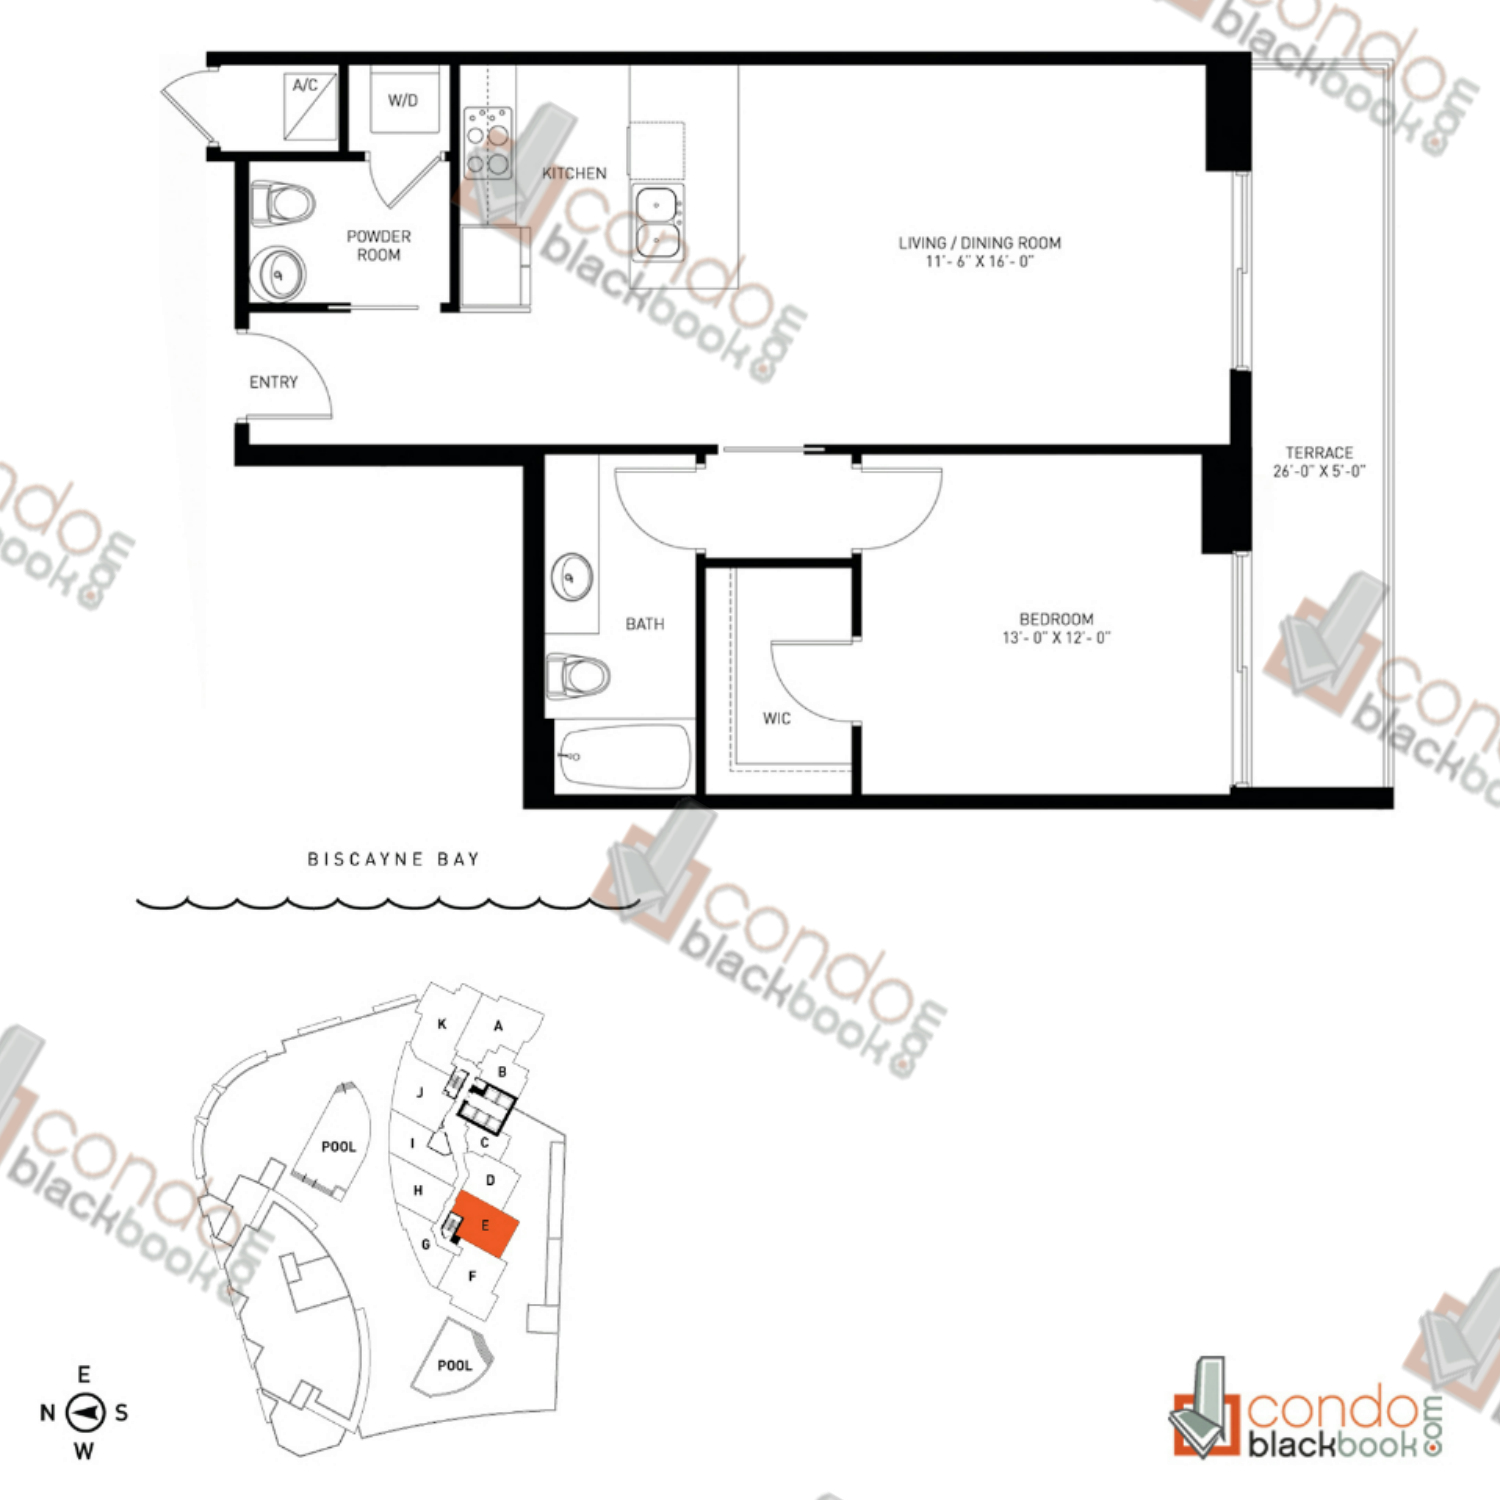 Floor plan for Quantum on the Bay Edgewater Miami, model Residence_E, line South Tower - 09, 1/1.5 bedrooms, 838 sq ft